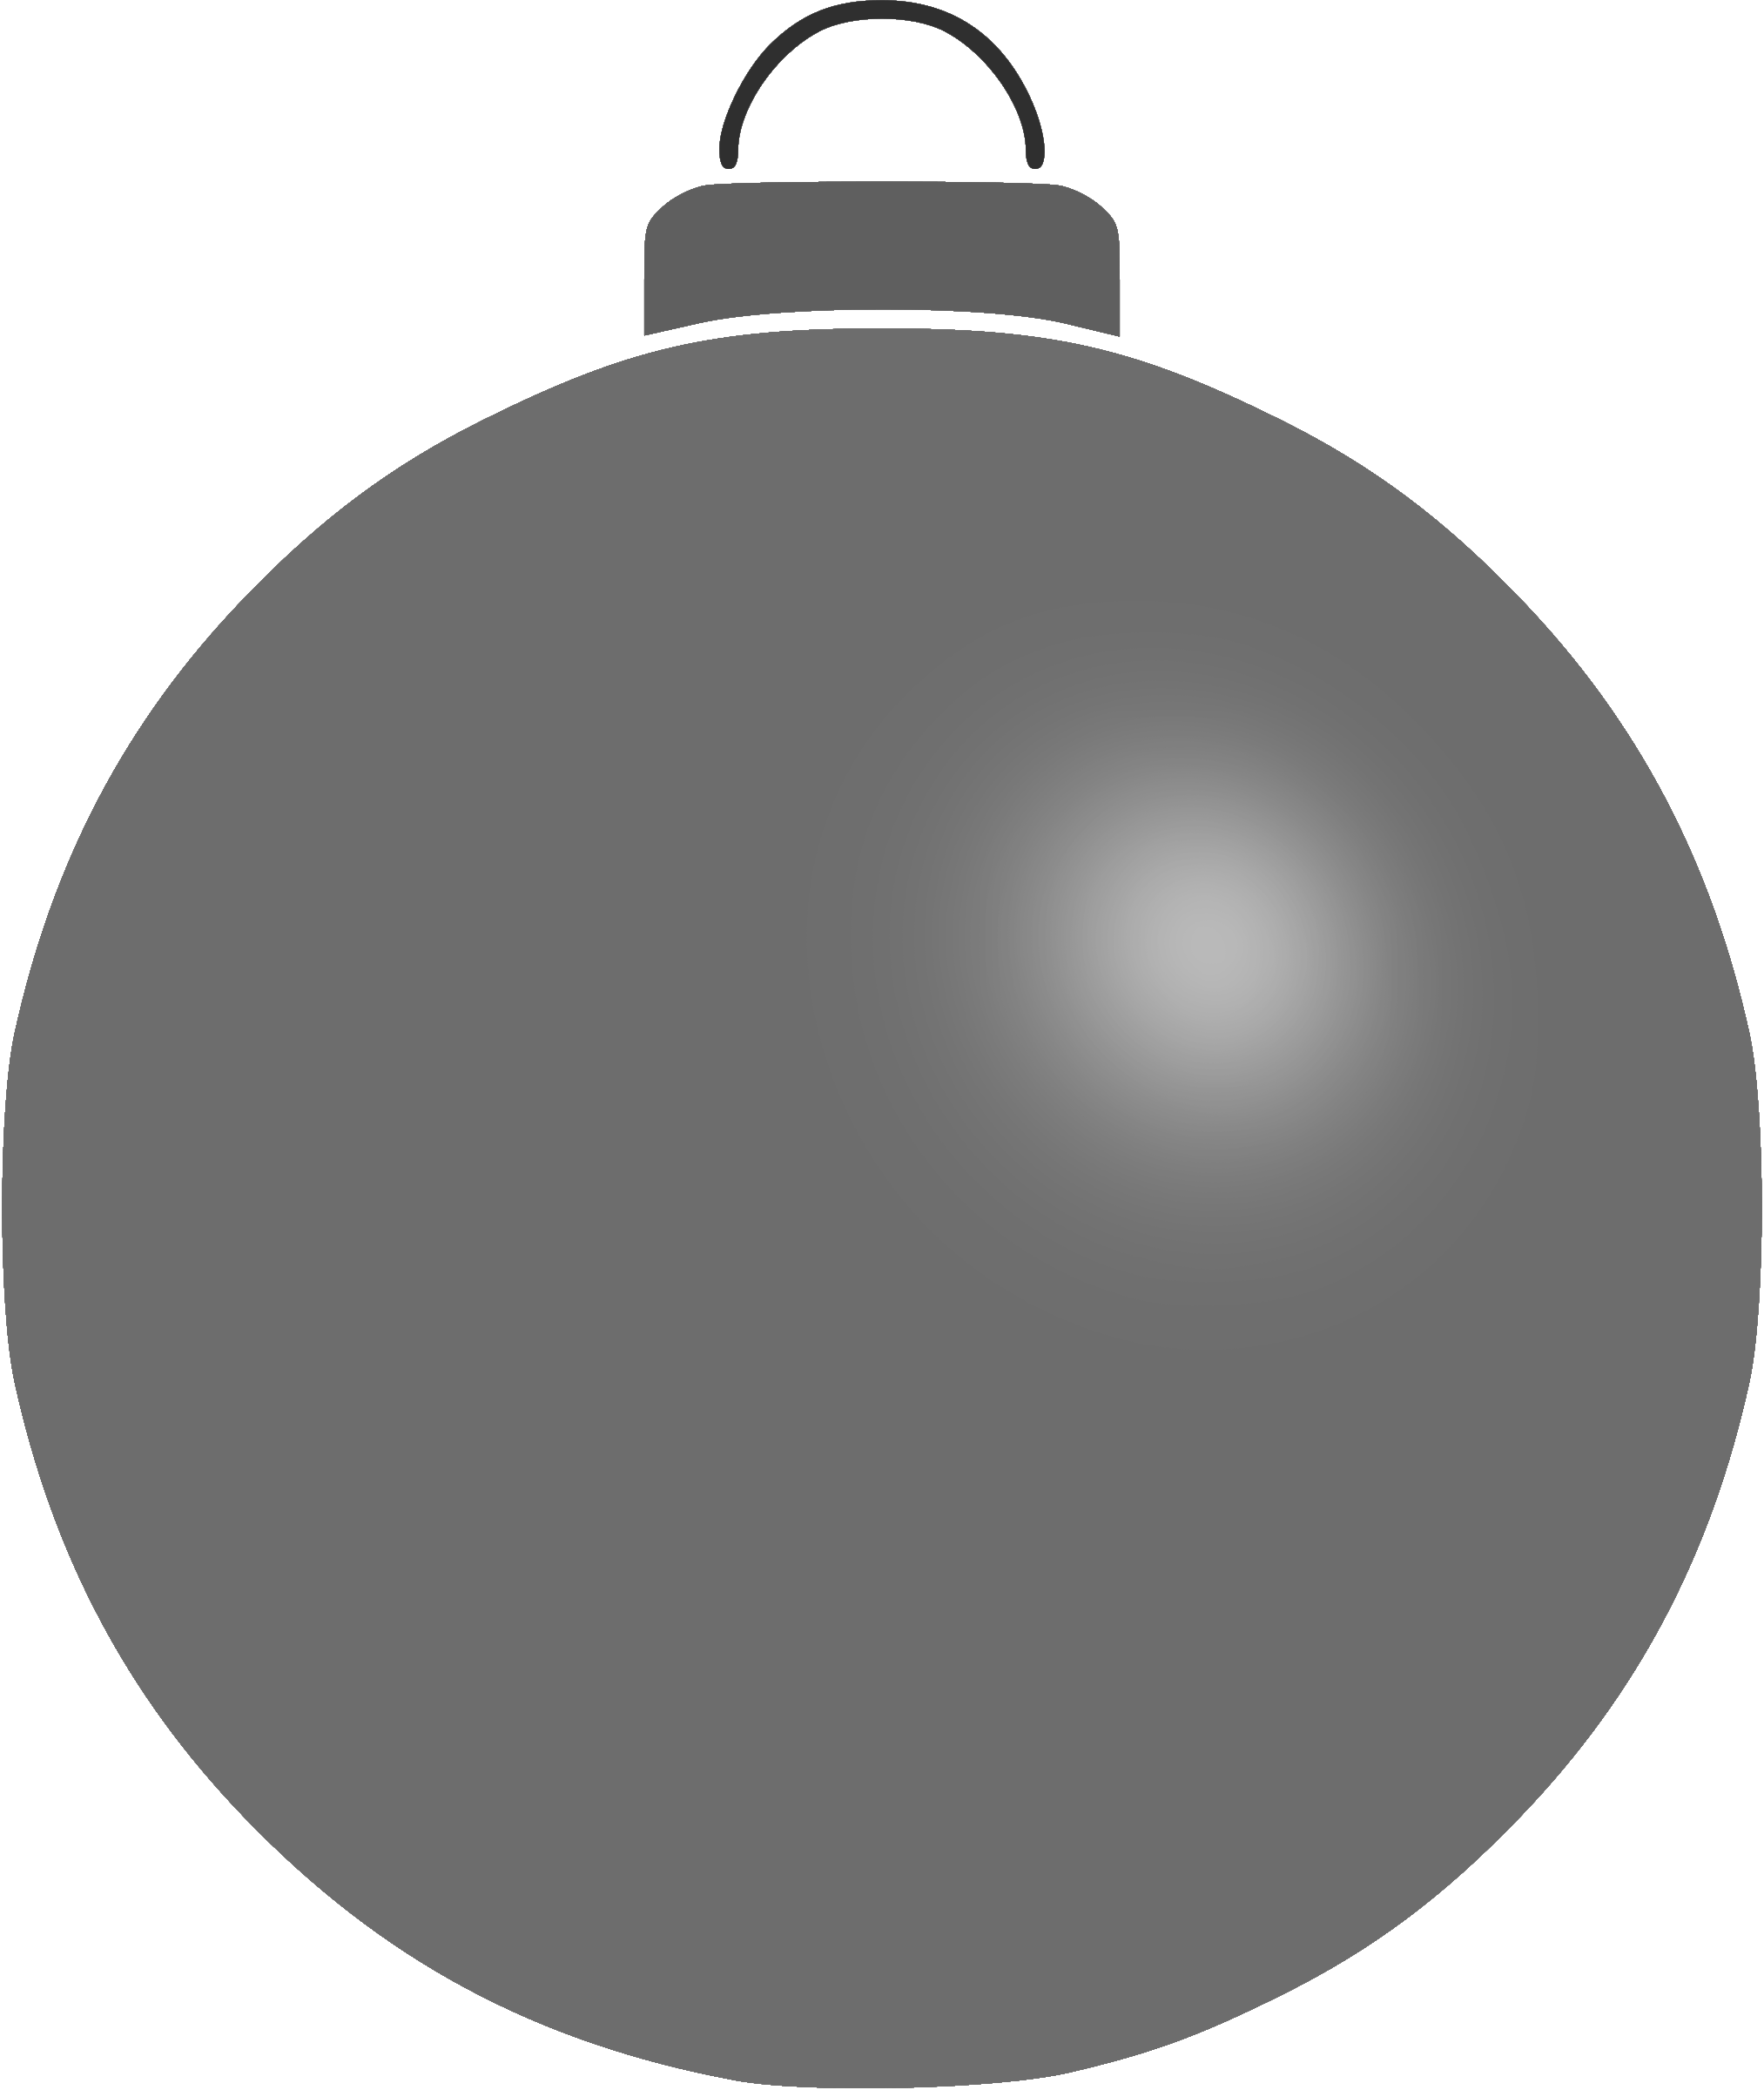 Plain bauble 13 by Firkin